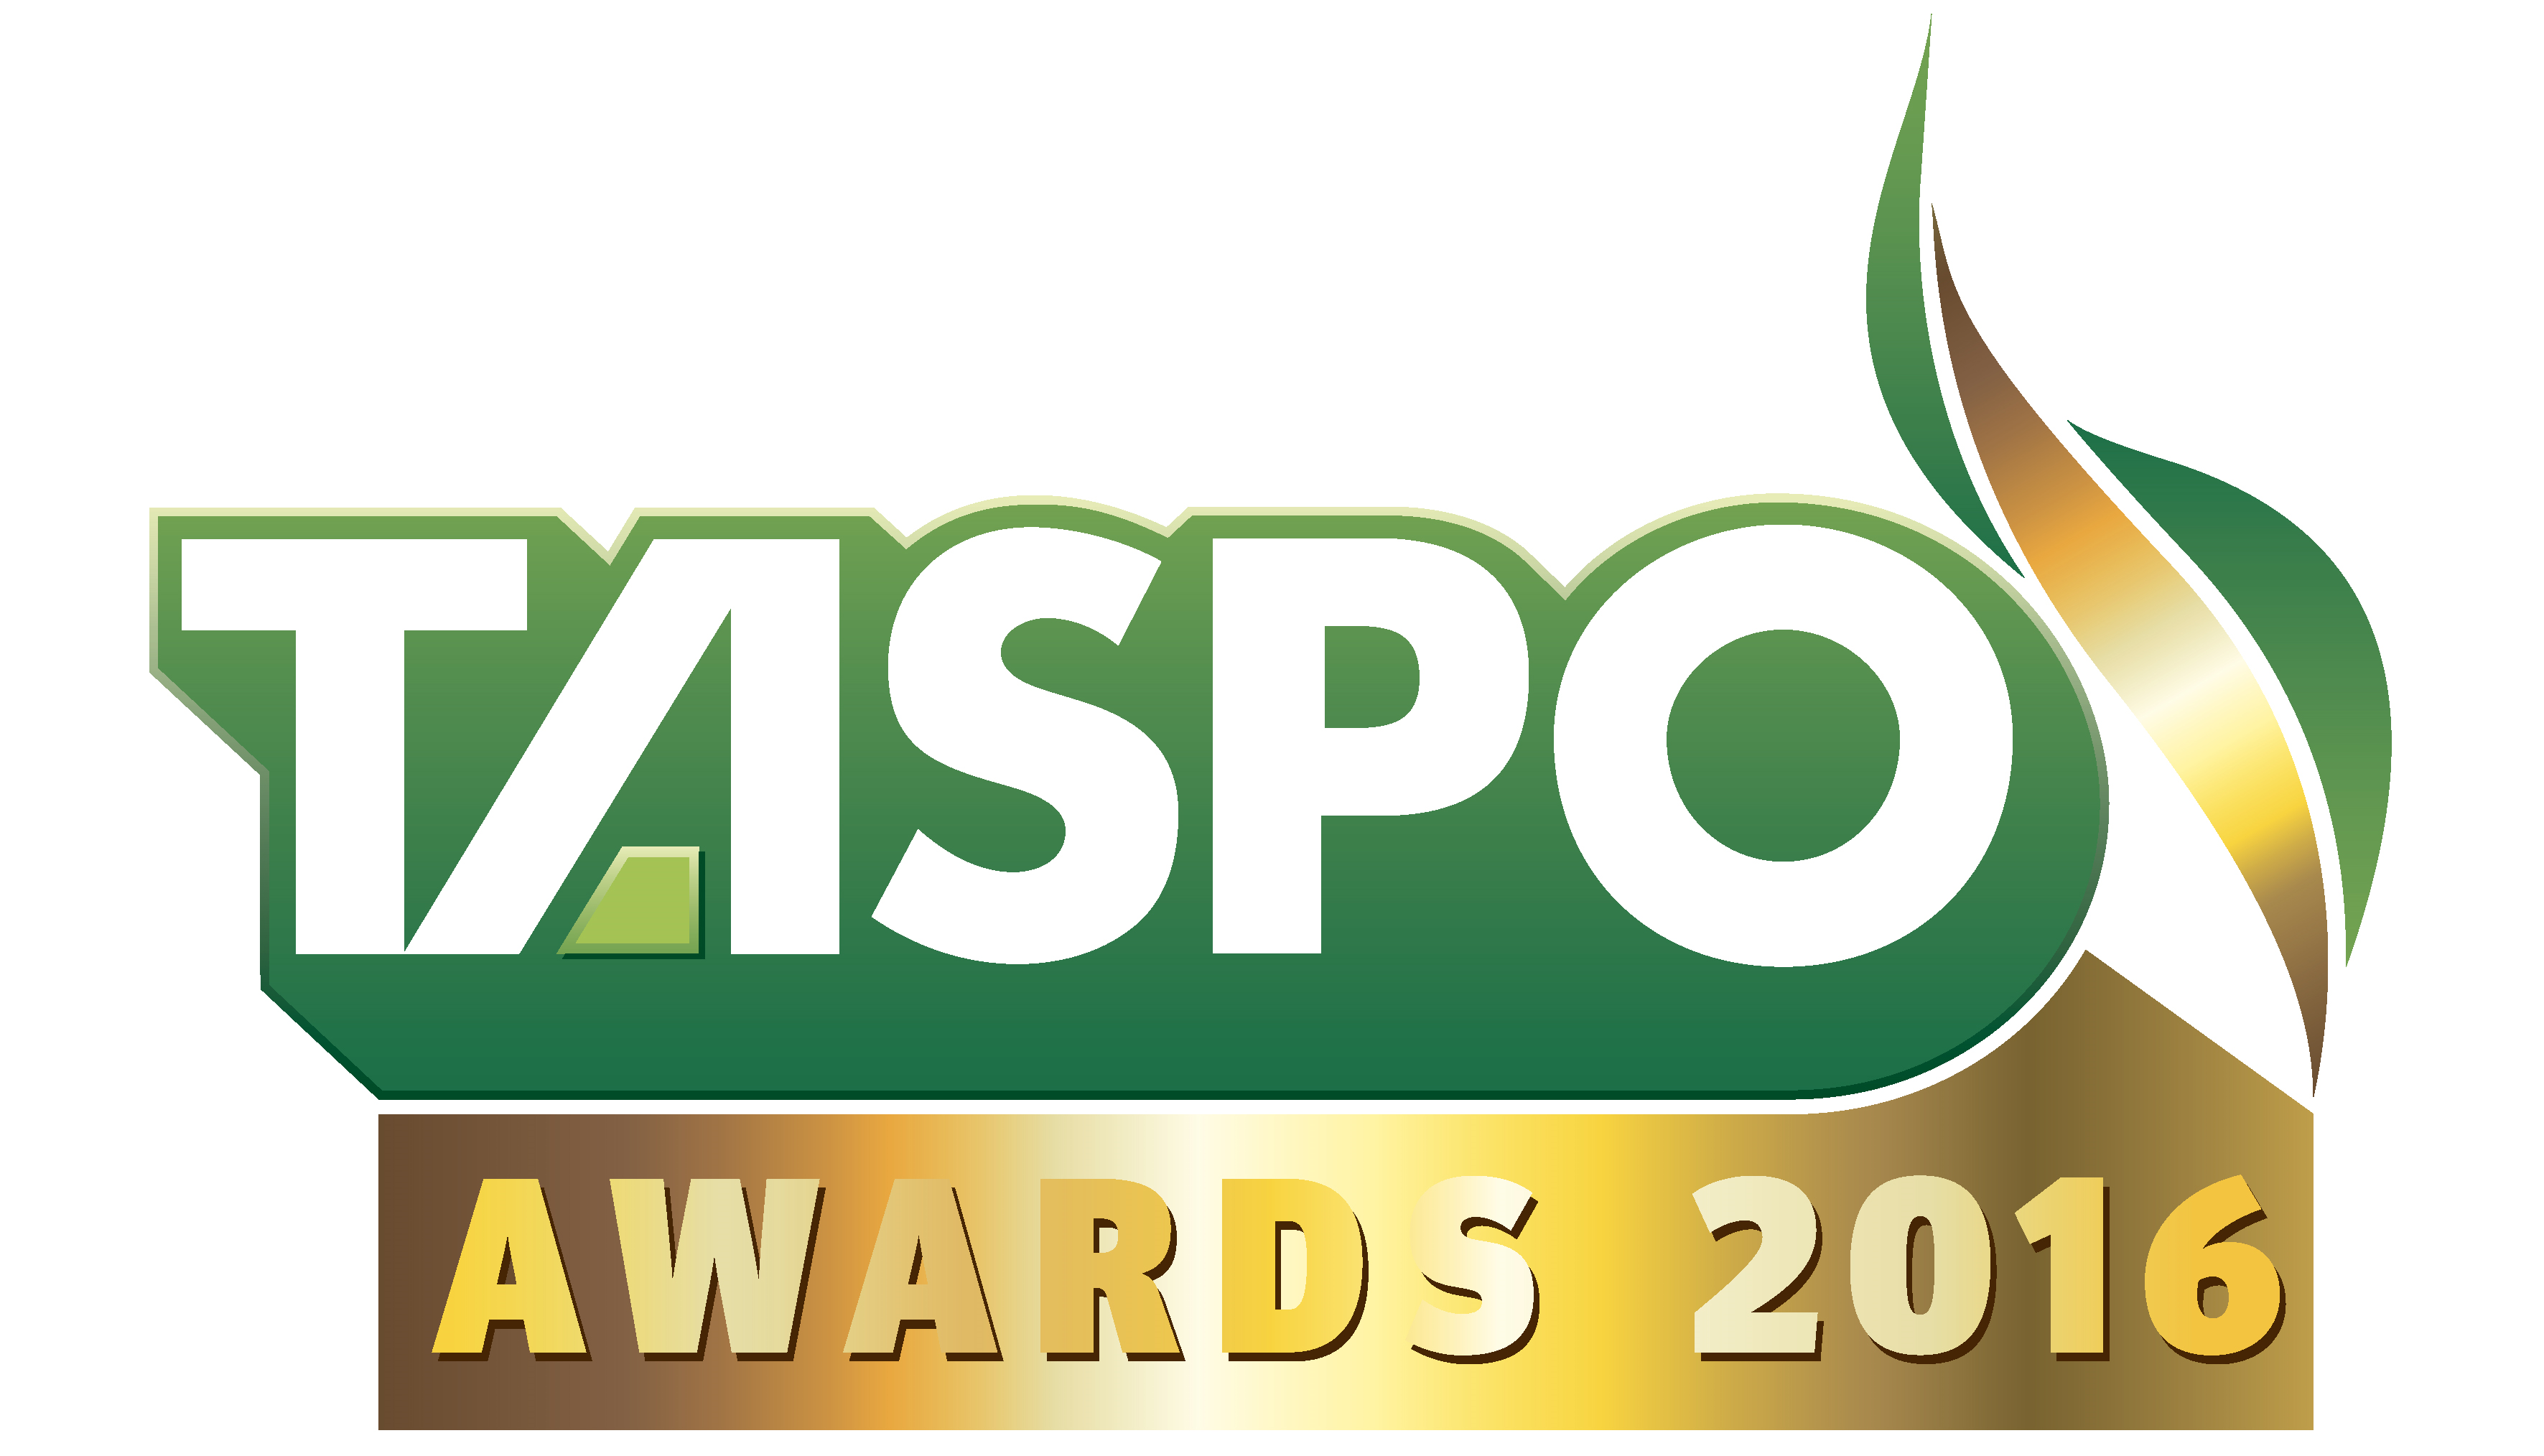 Royal Brinkman nominated for Taspo Awards 2016